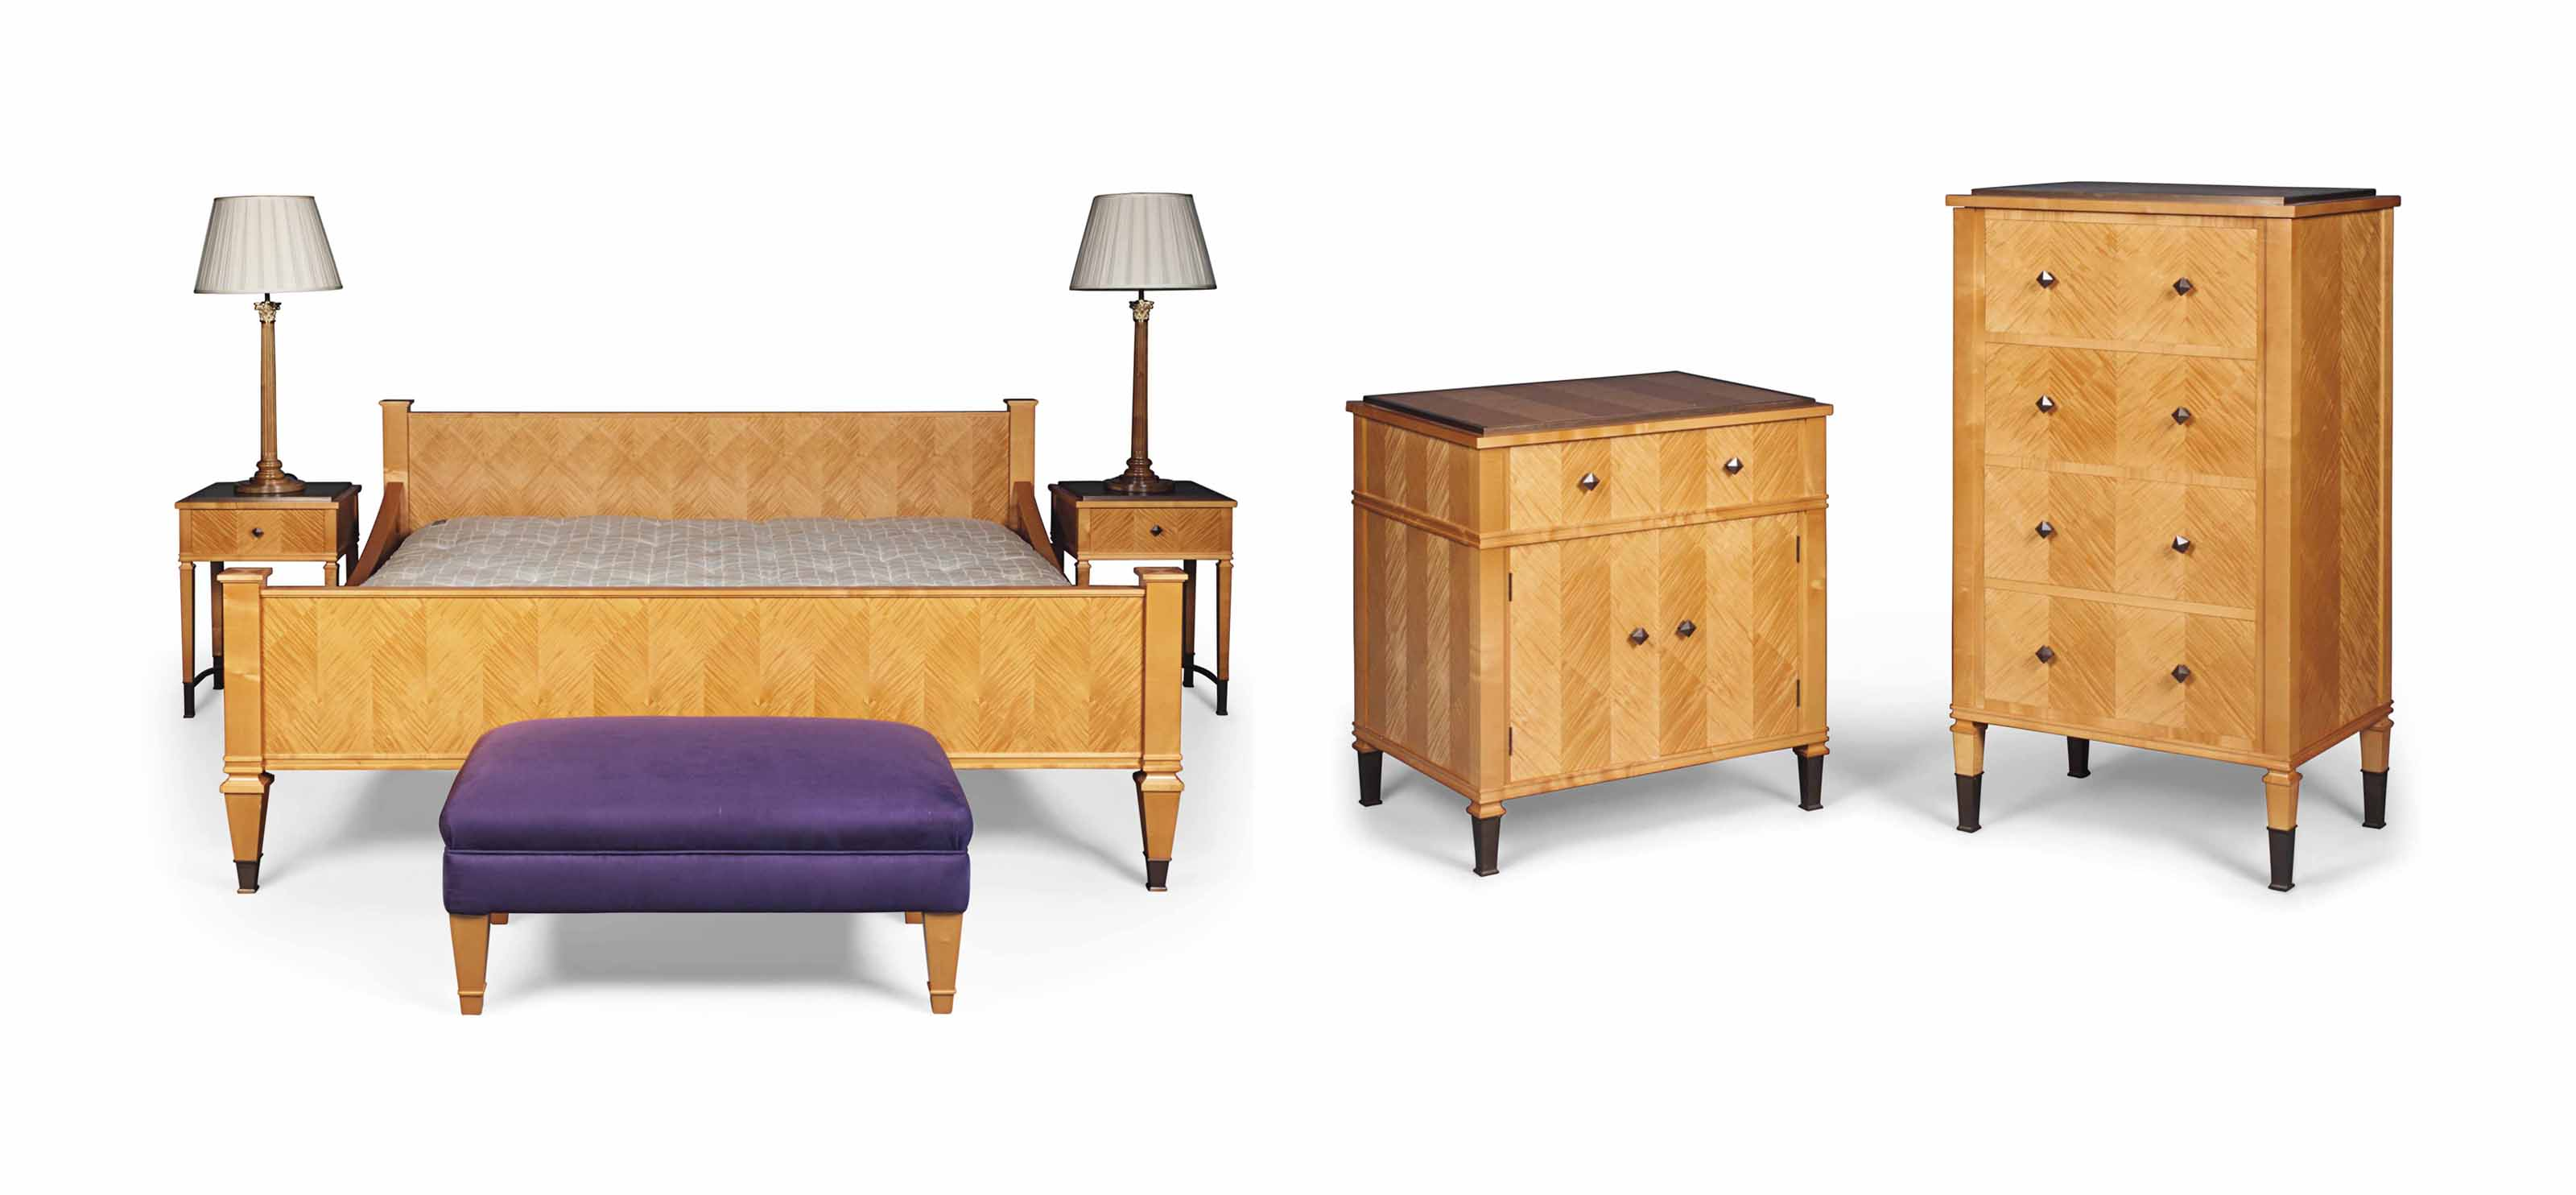 AN ENGLISH MAPLE AND PATINATED BRASS BEDROOM SUITE